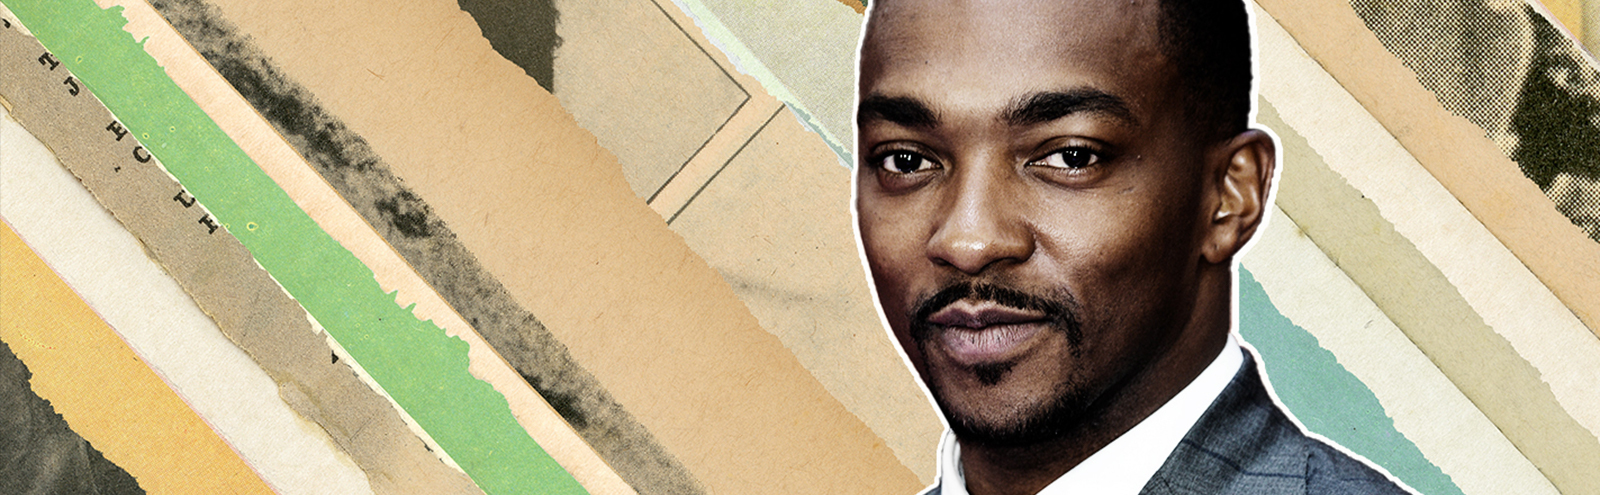 Anthony Mackie On The Responsibility And Message Of Captain America